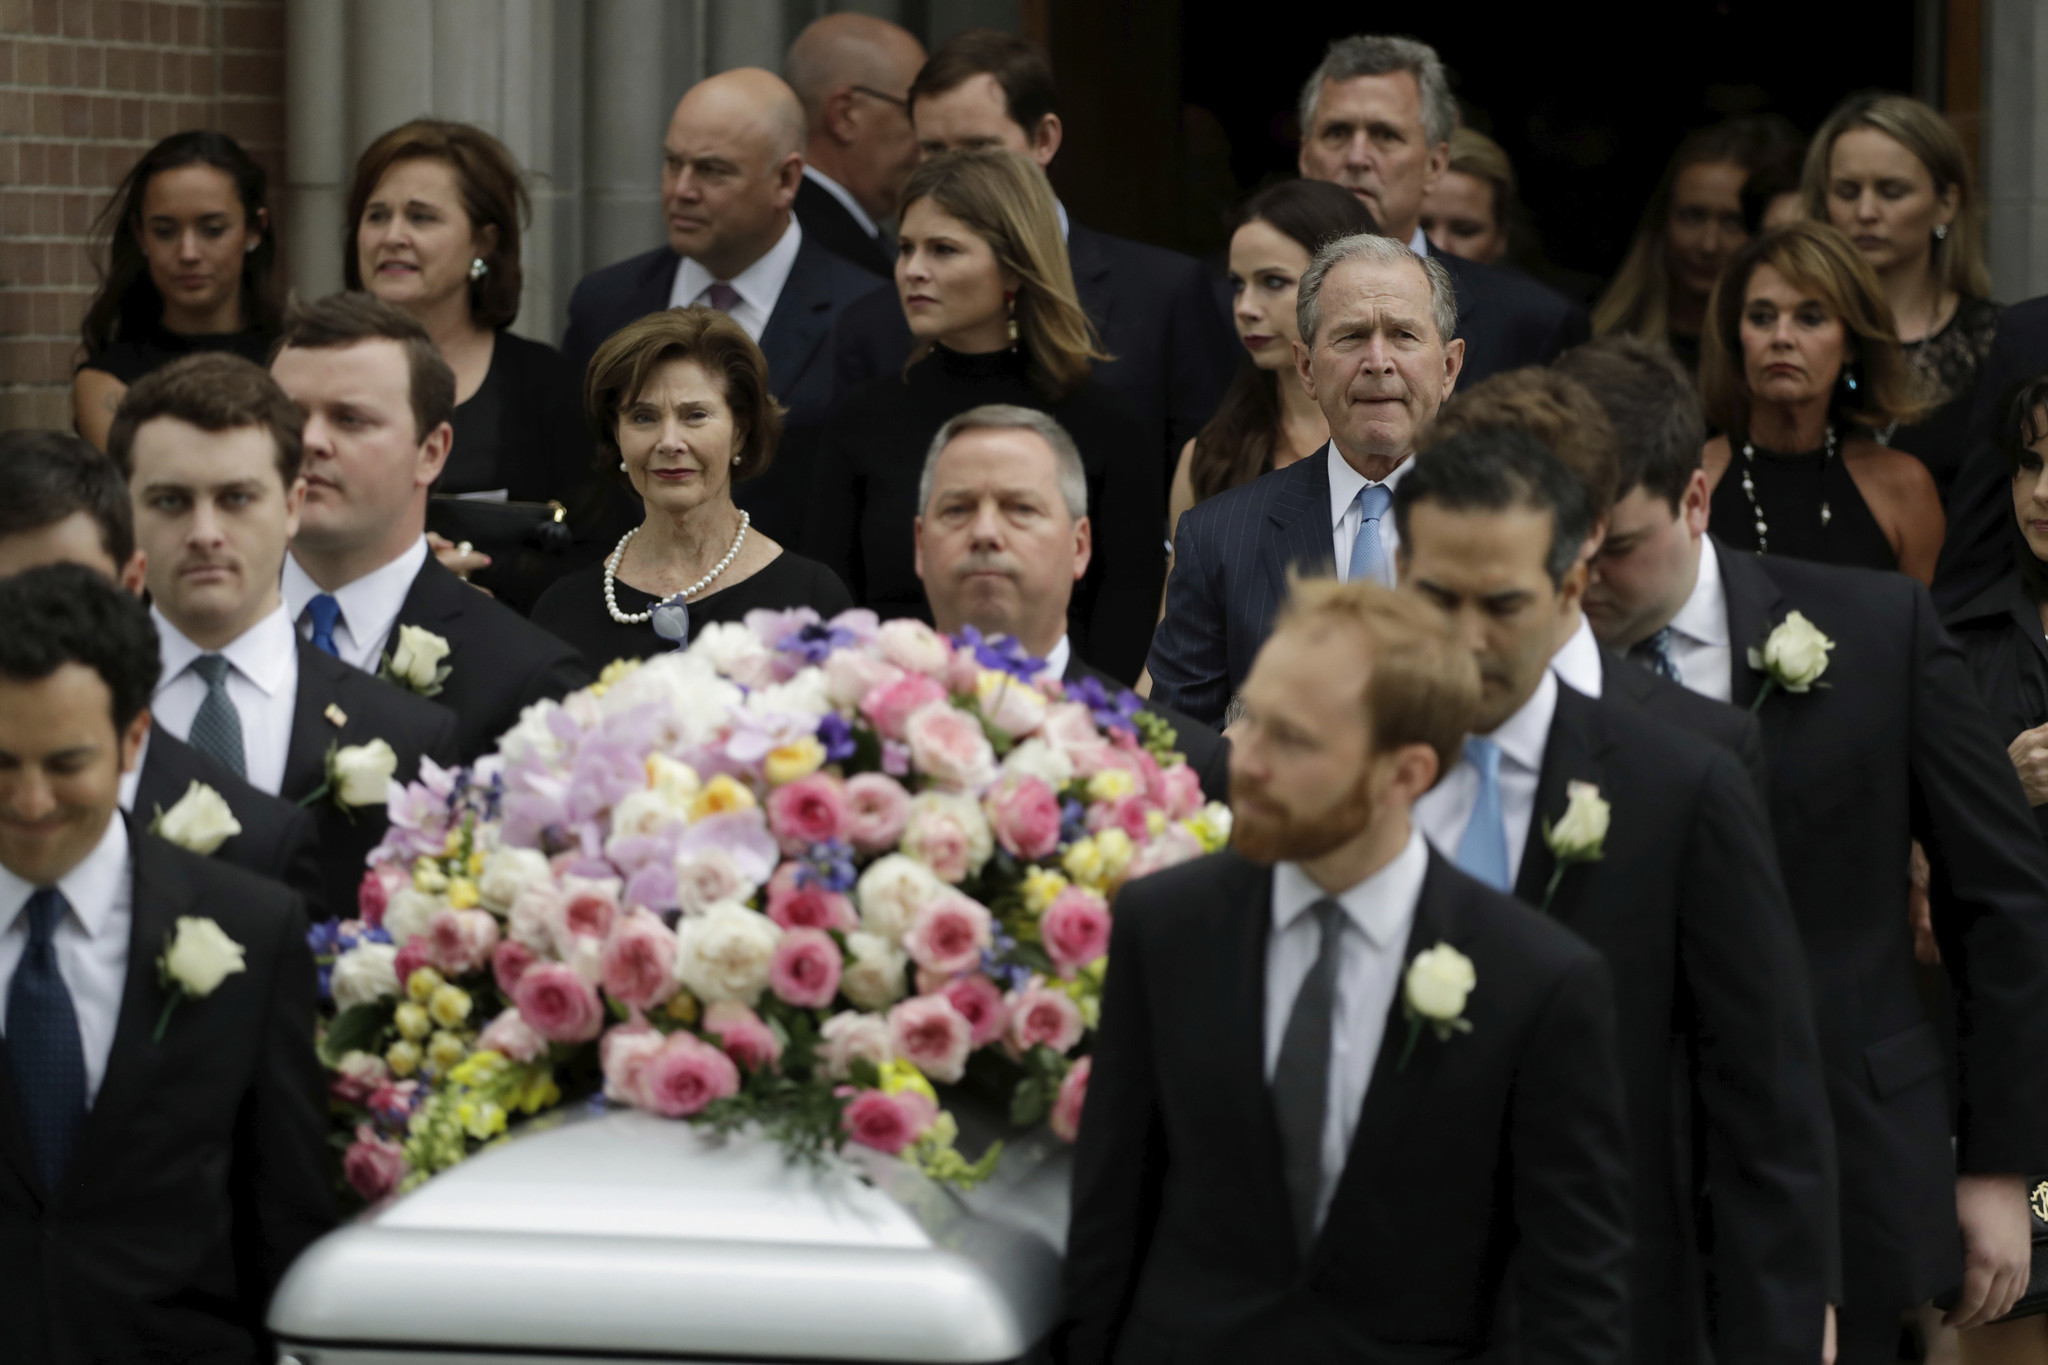 Laughter Tears At Funeral For Barbara Bush As Hundreds Pay Respects